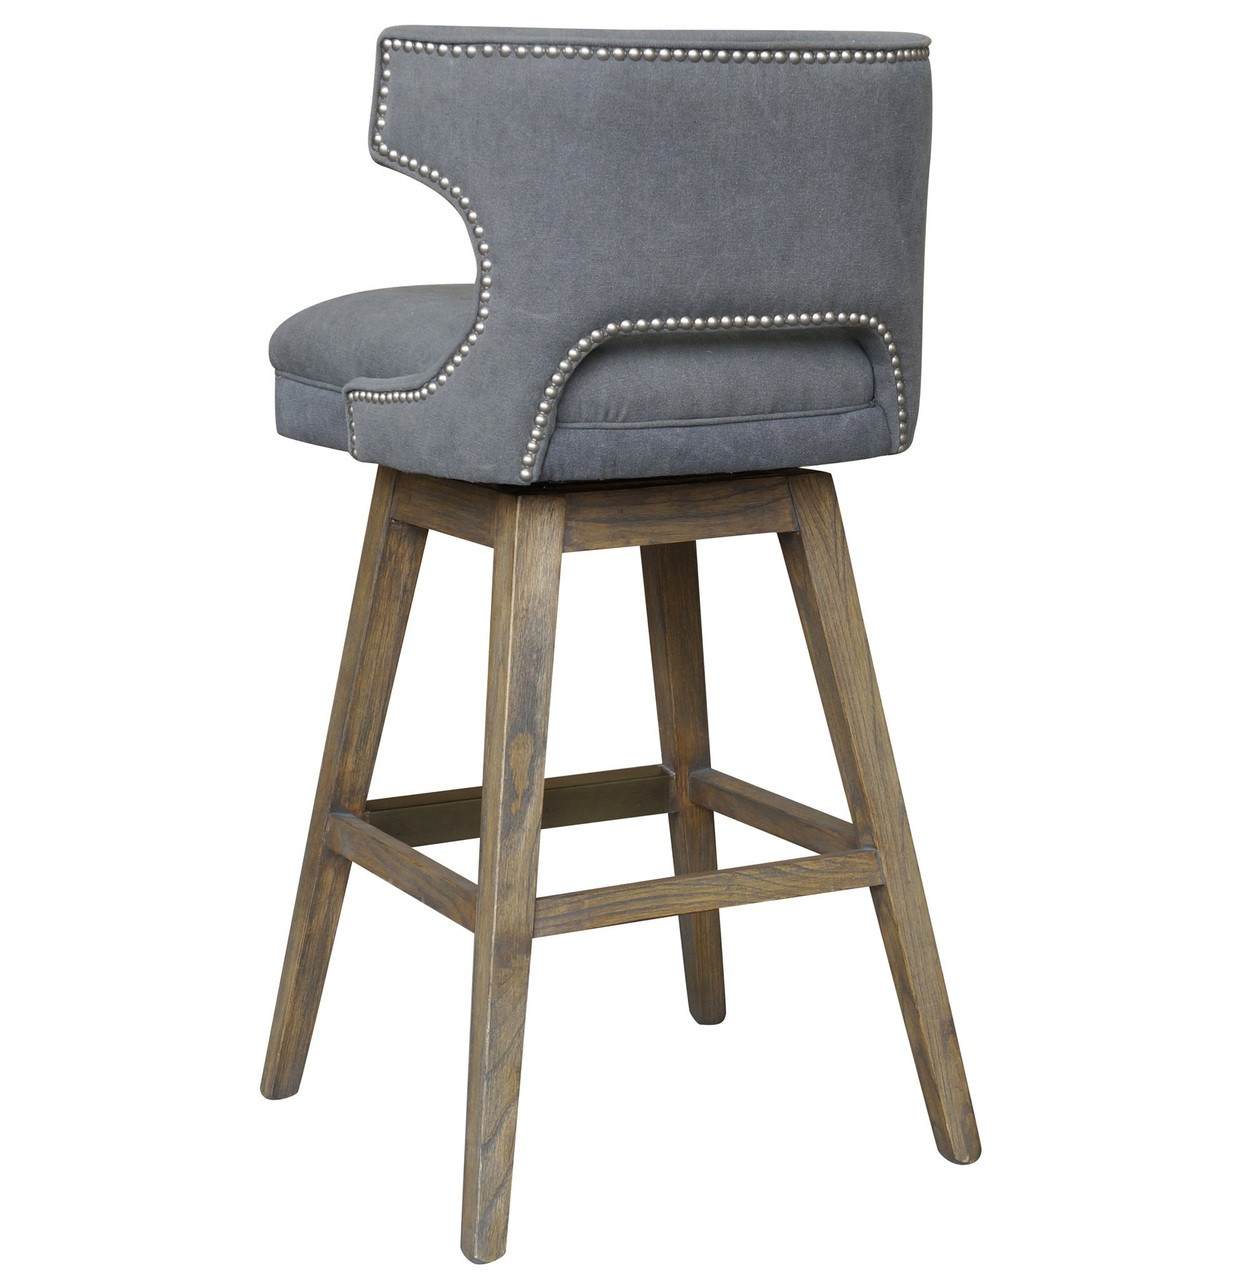 Task Dark Gray Upholstered Nailhead Wing Counter Stool  : TaskDarkGrayNailheadWingSwivelBarStools70769143026775112801280 from www.zinhome.com size 1258 x 1280 jpeg 197kB